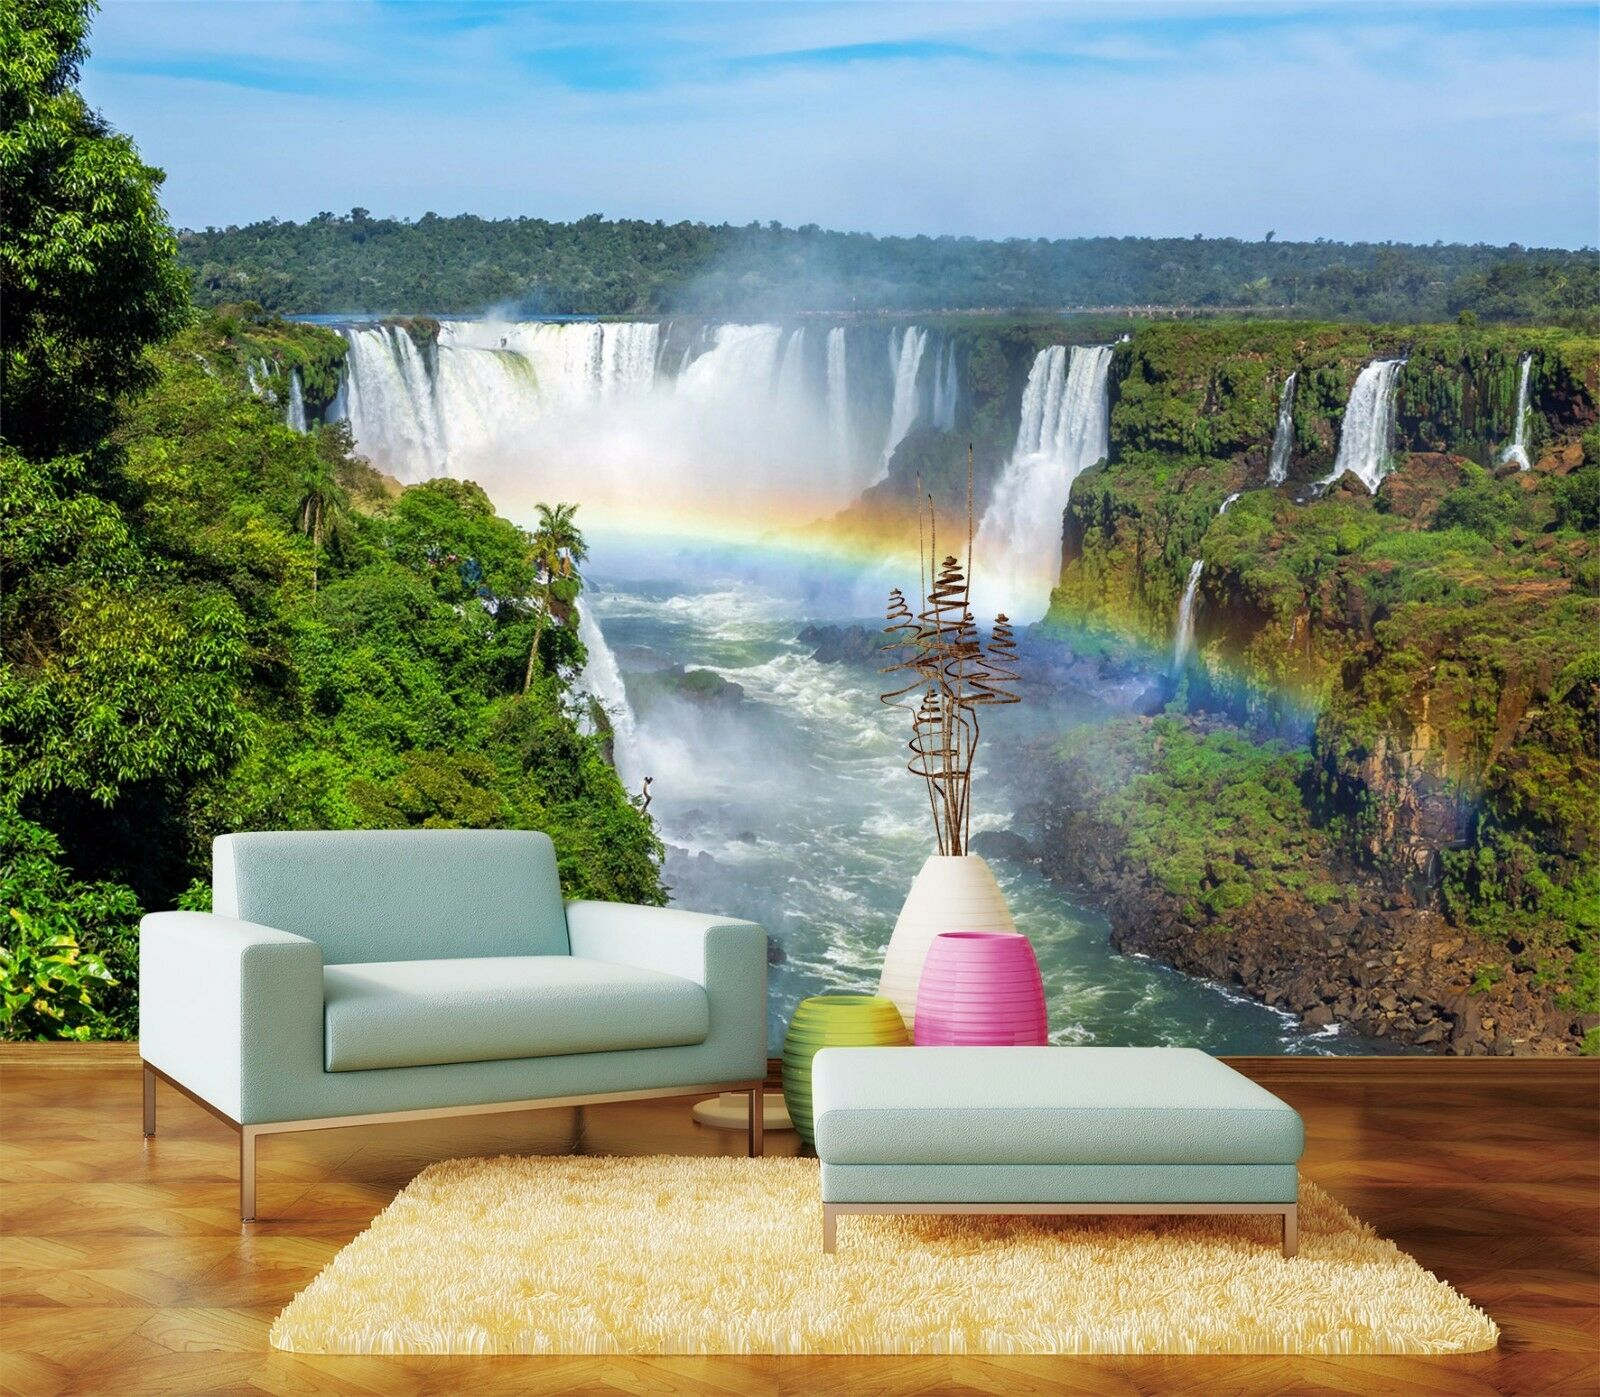 3D Rainbow, waterfall 3243 Wall Paper Print Wall Decal Deco Indoor Wall Murals